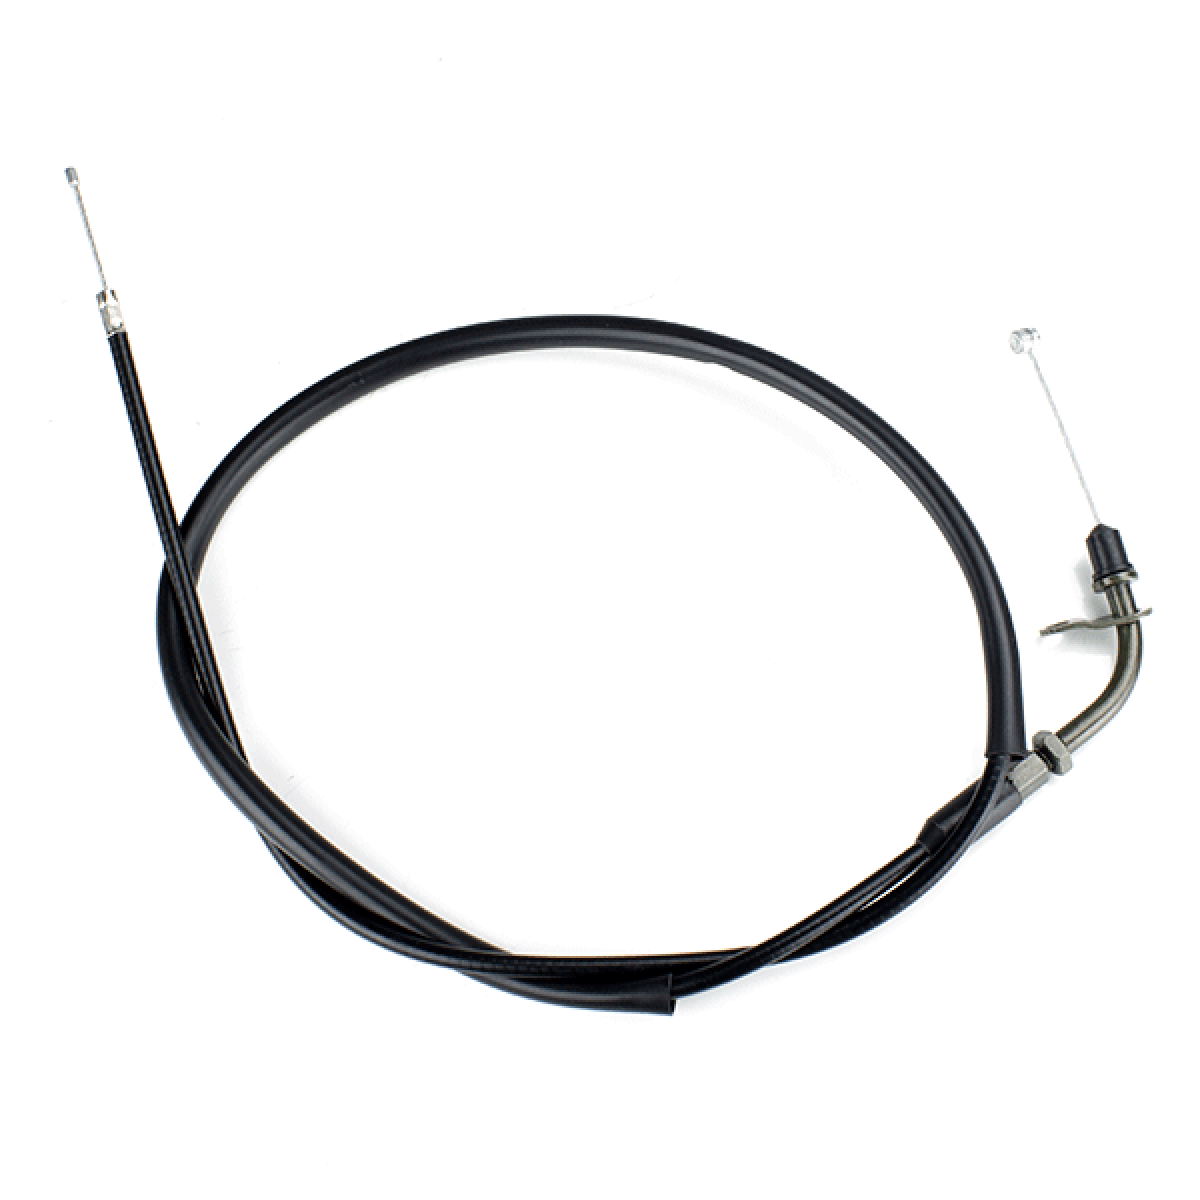 THRTTL104 Motorcycle Throttle Cable for SK125-22 #104